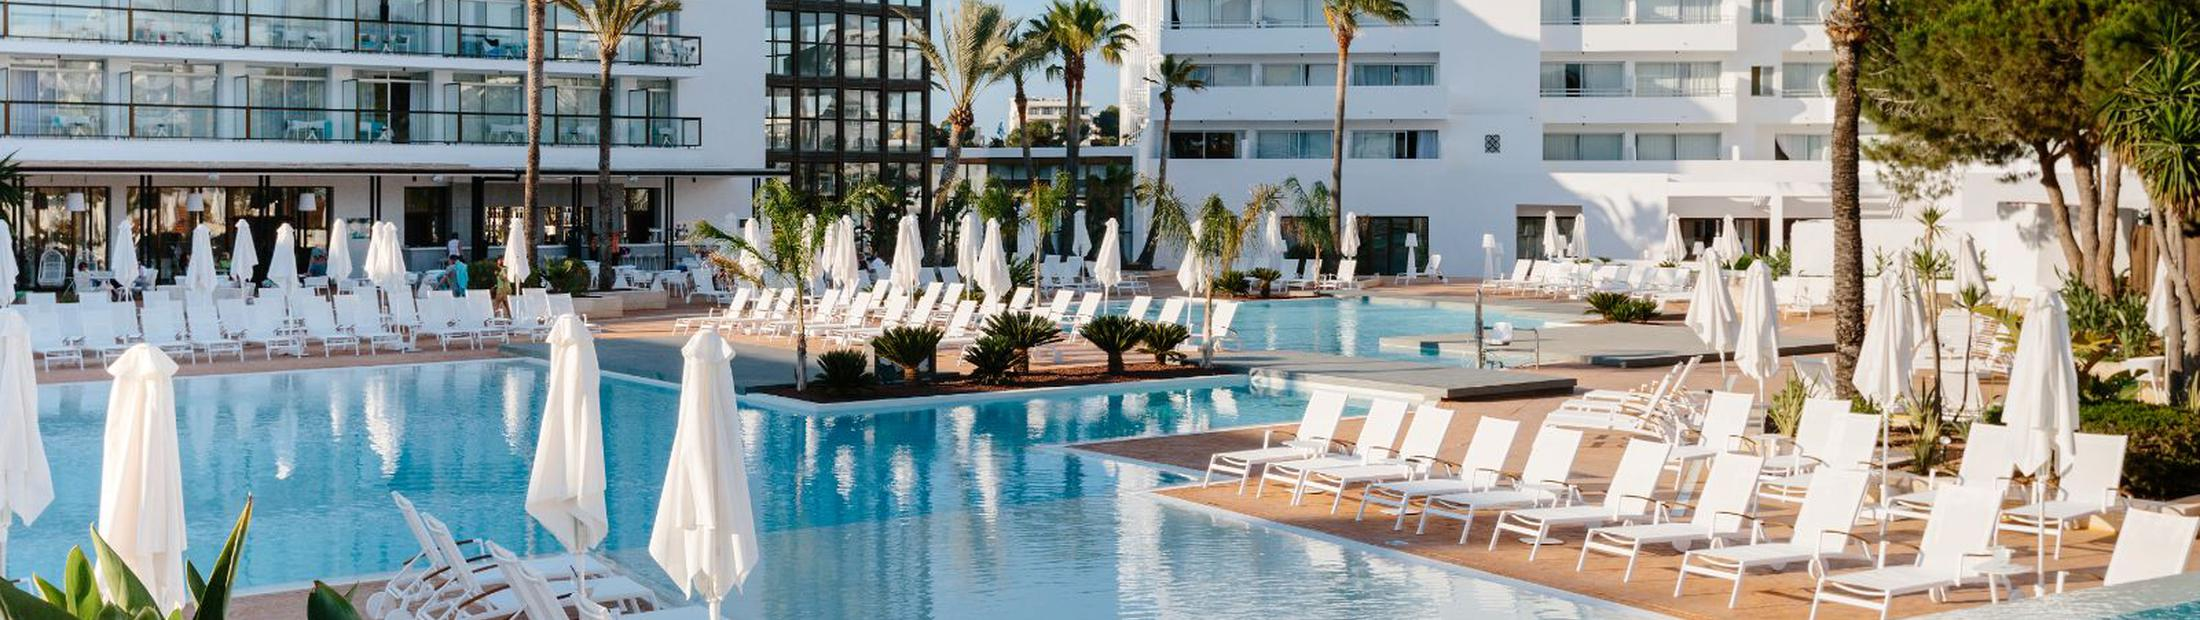 AluaSoul Ibiza (Only Adults)  ****Es Canar, Ibiza AluaSoul Ibiza (Adults Only)  Ibiza